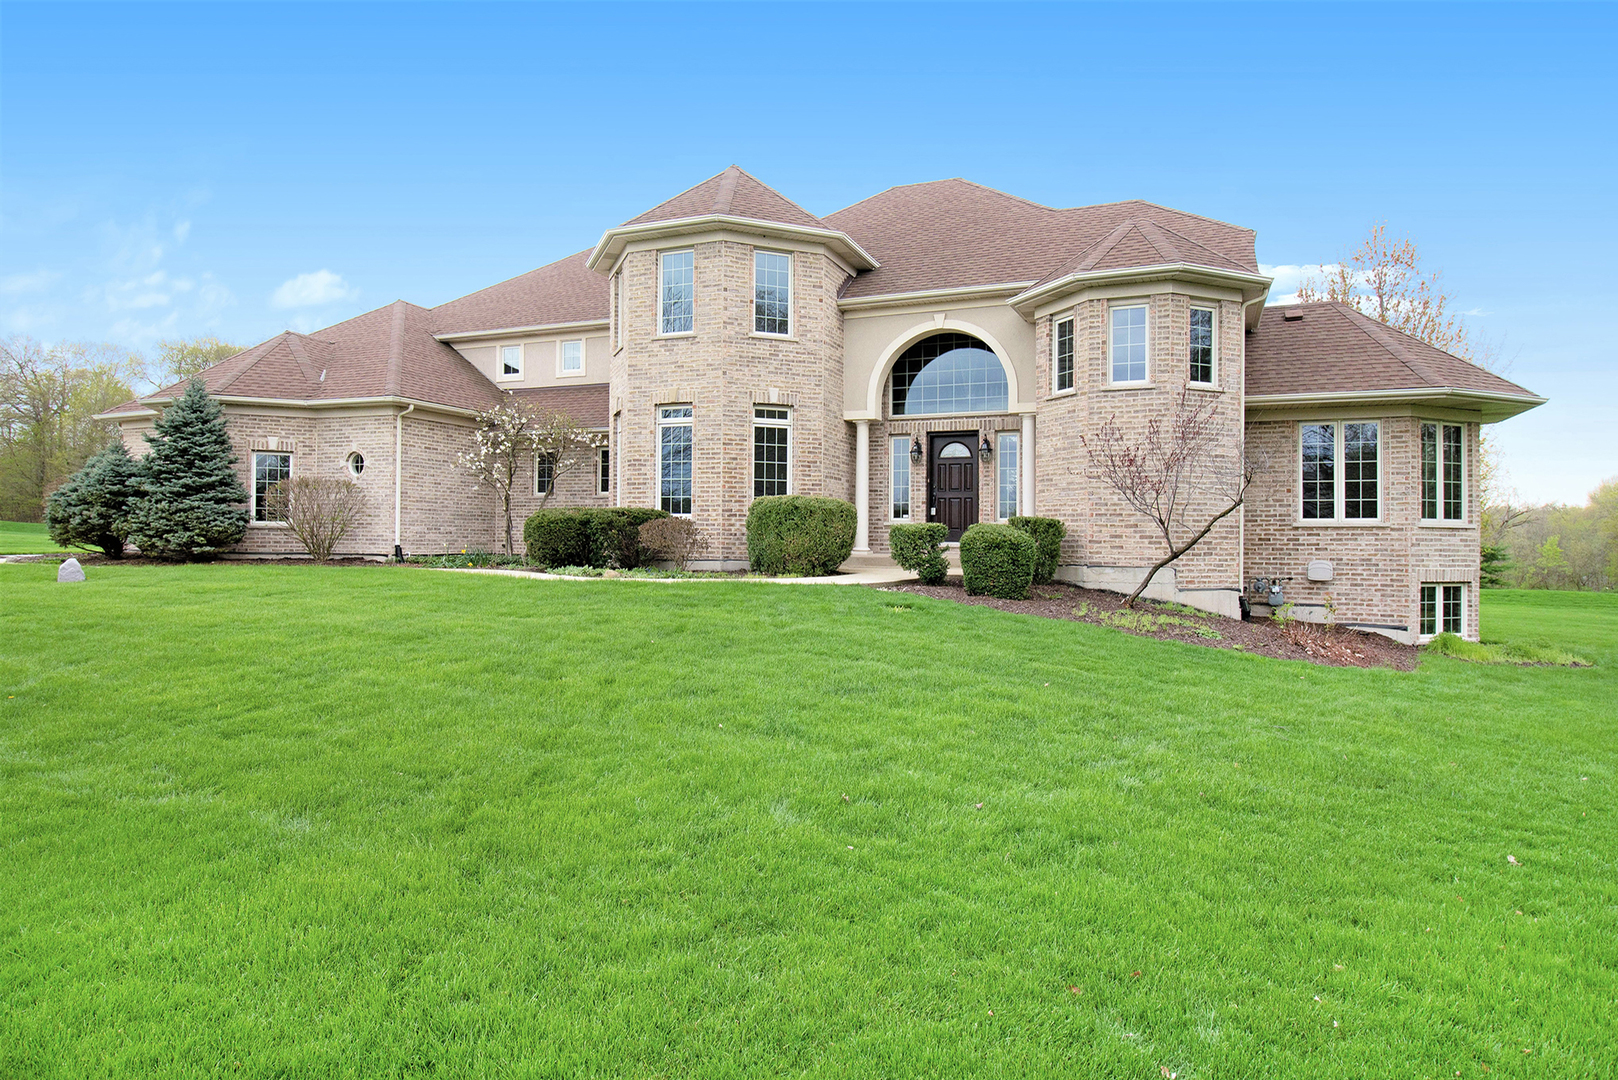 5500 Half Hollow Court, Oswego, Illinois